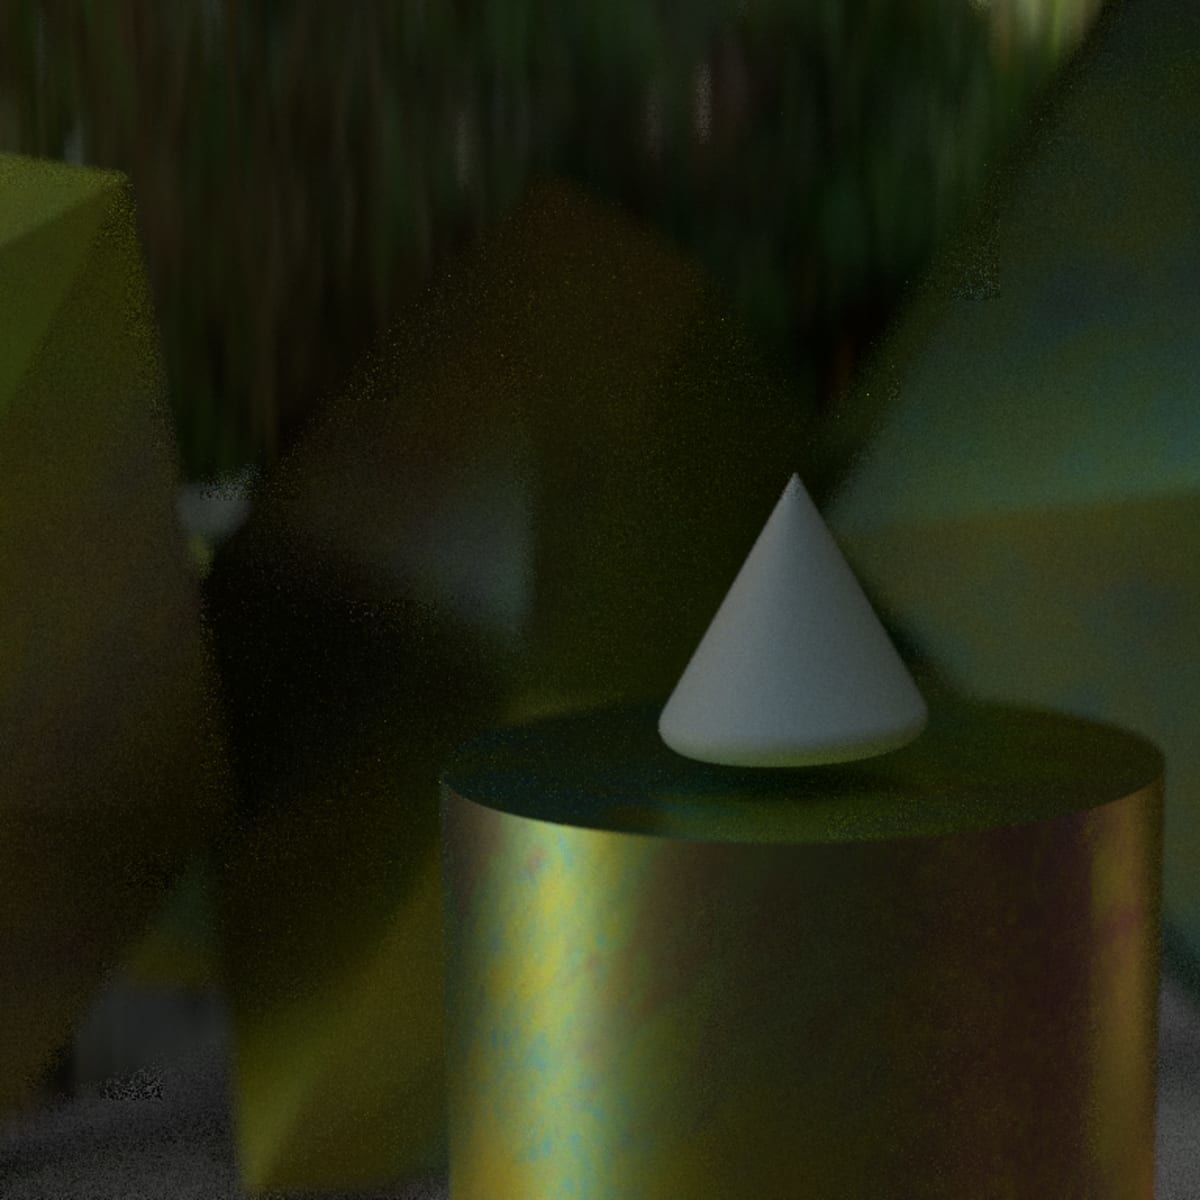 Computer-generated image showing a triangular sculpture in space.